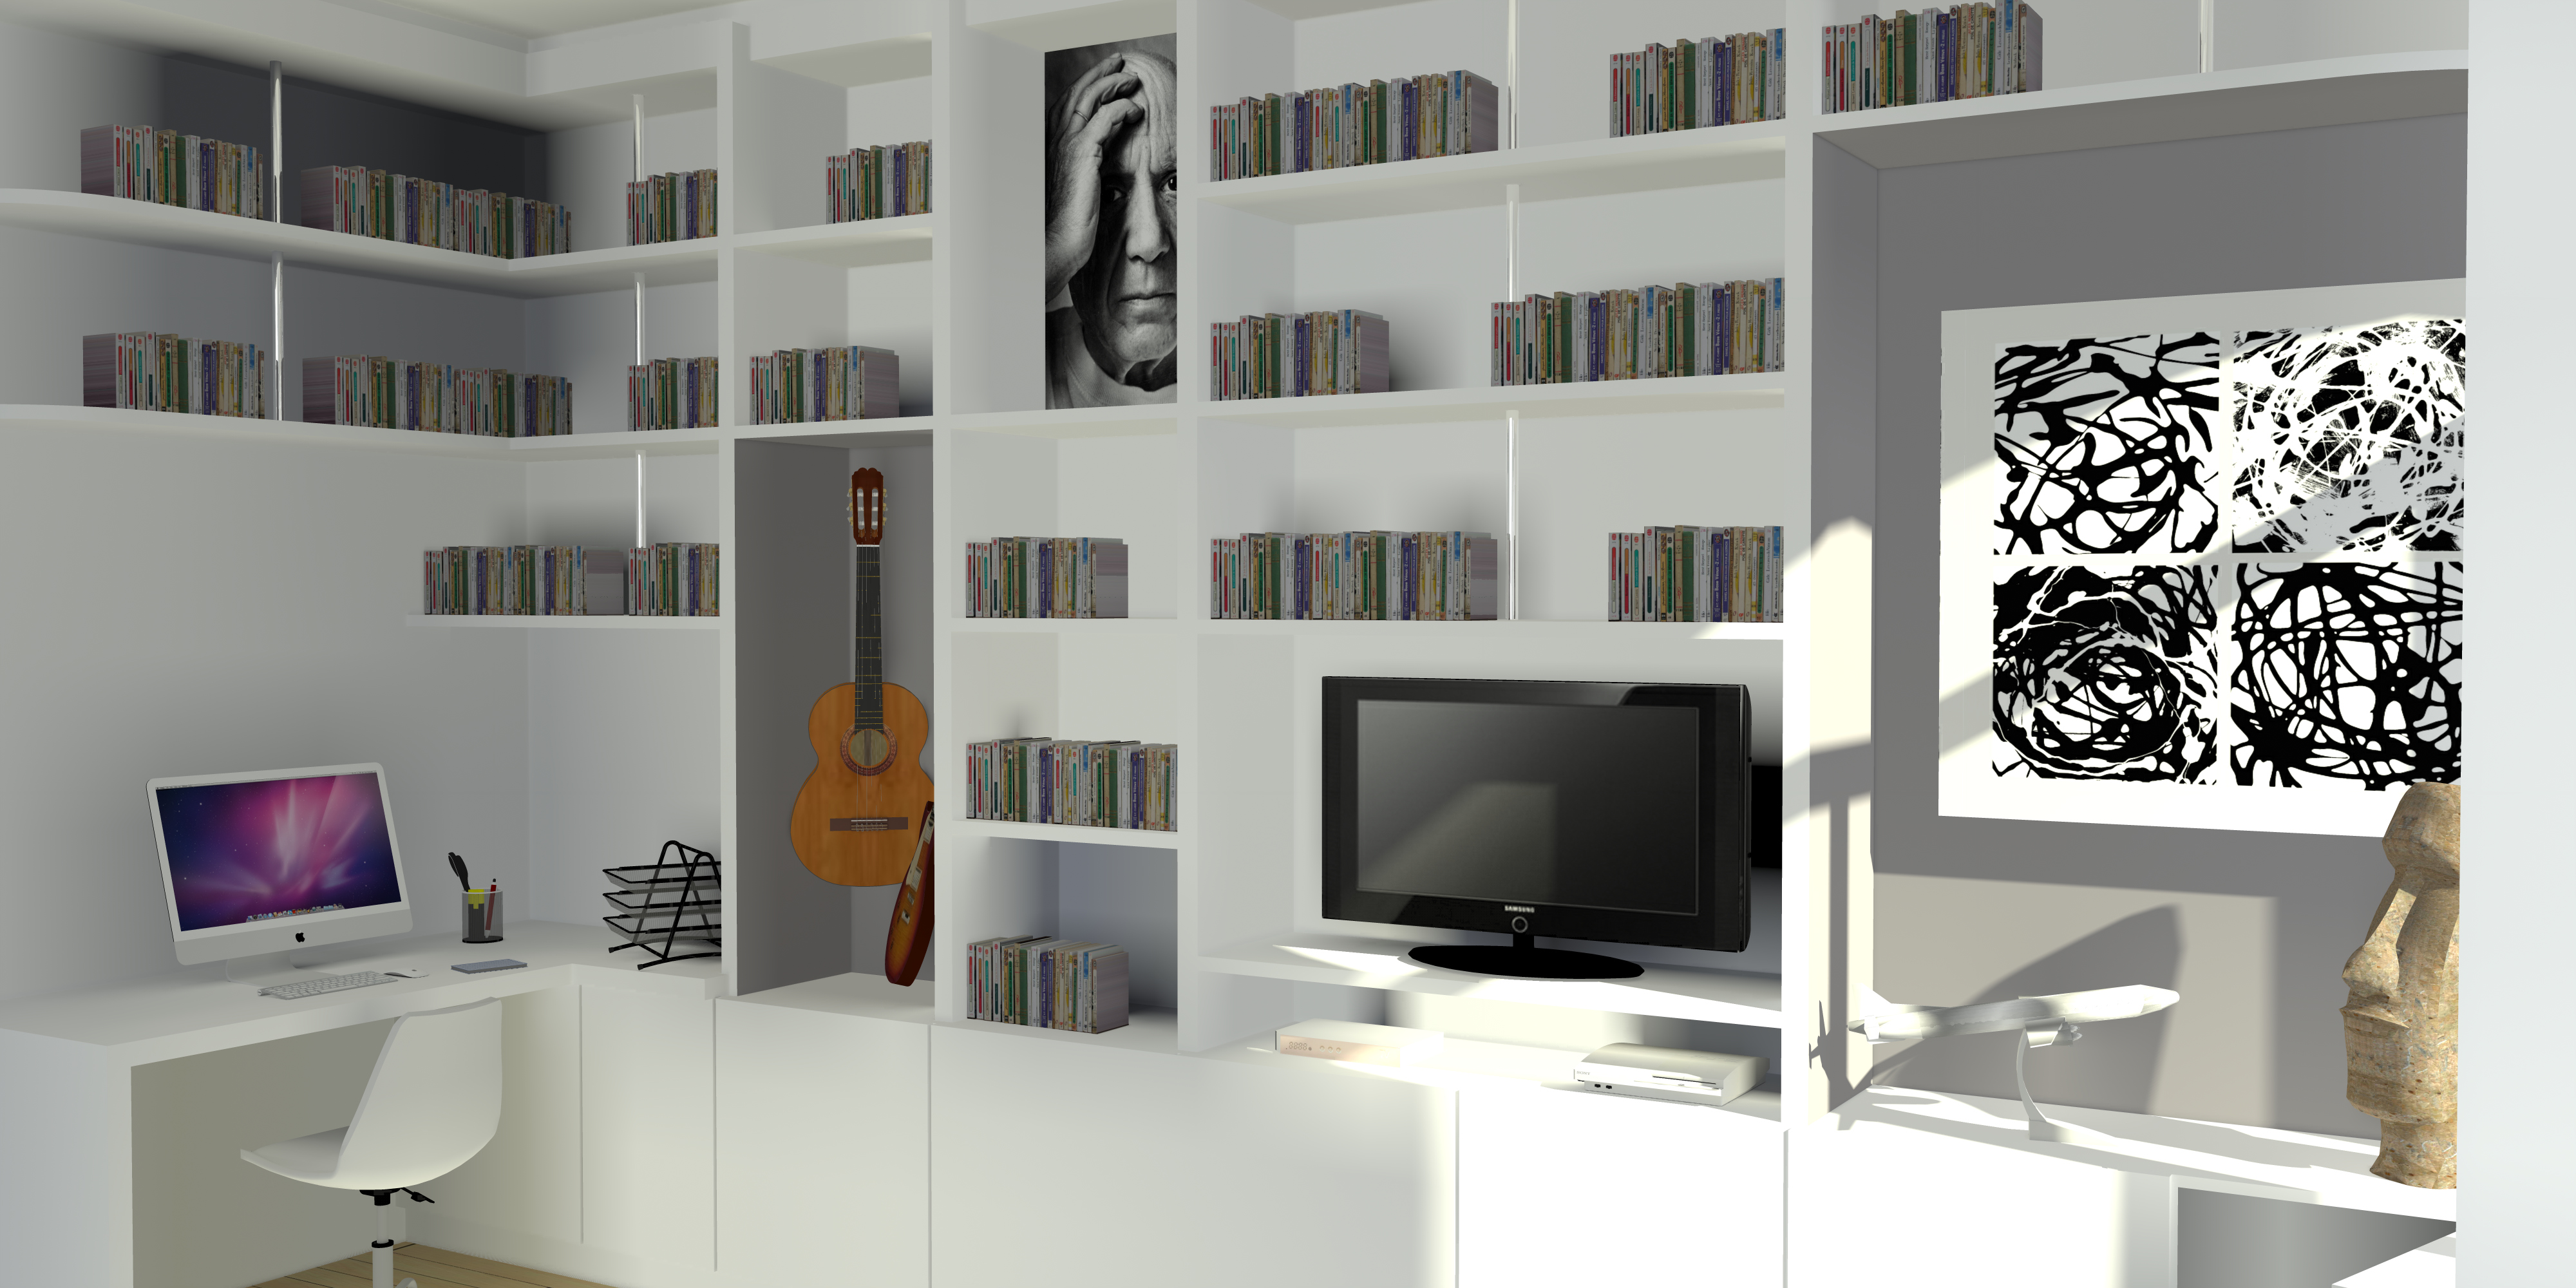 meuble mdf sur mesure dressing meuble de rangement et bibliothque spaceo home au meilleur prix. Black Bedroom Furniture Sets. Home Design Ideas